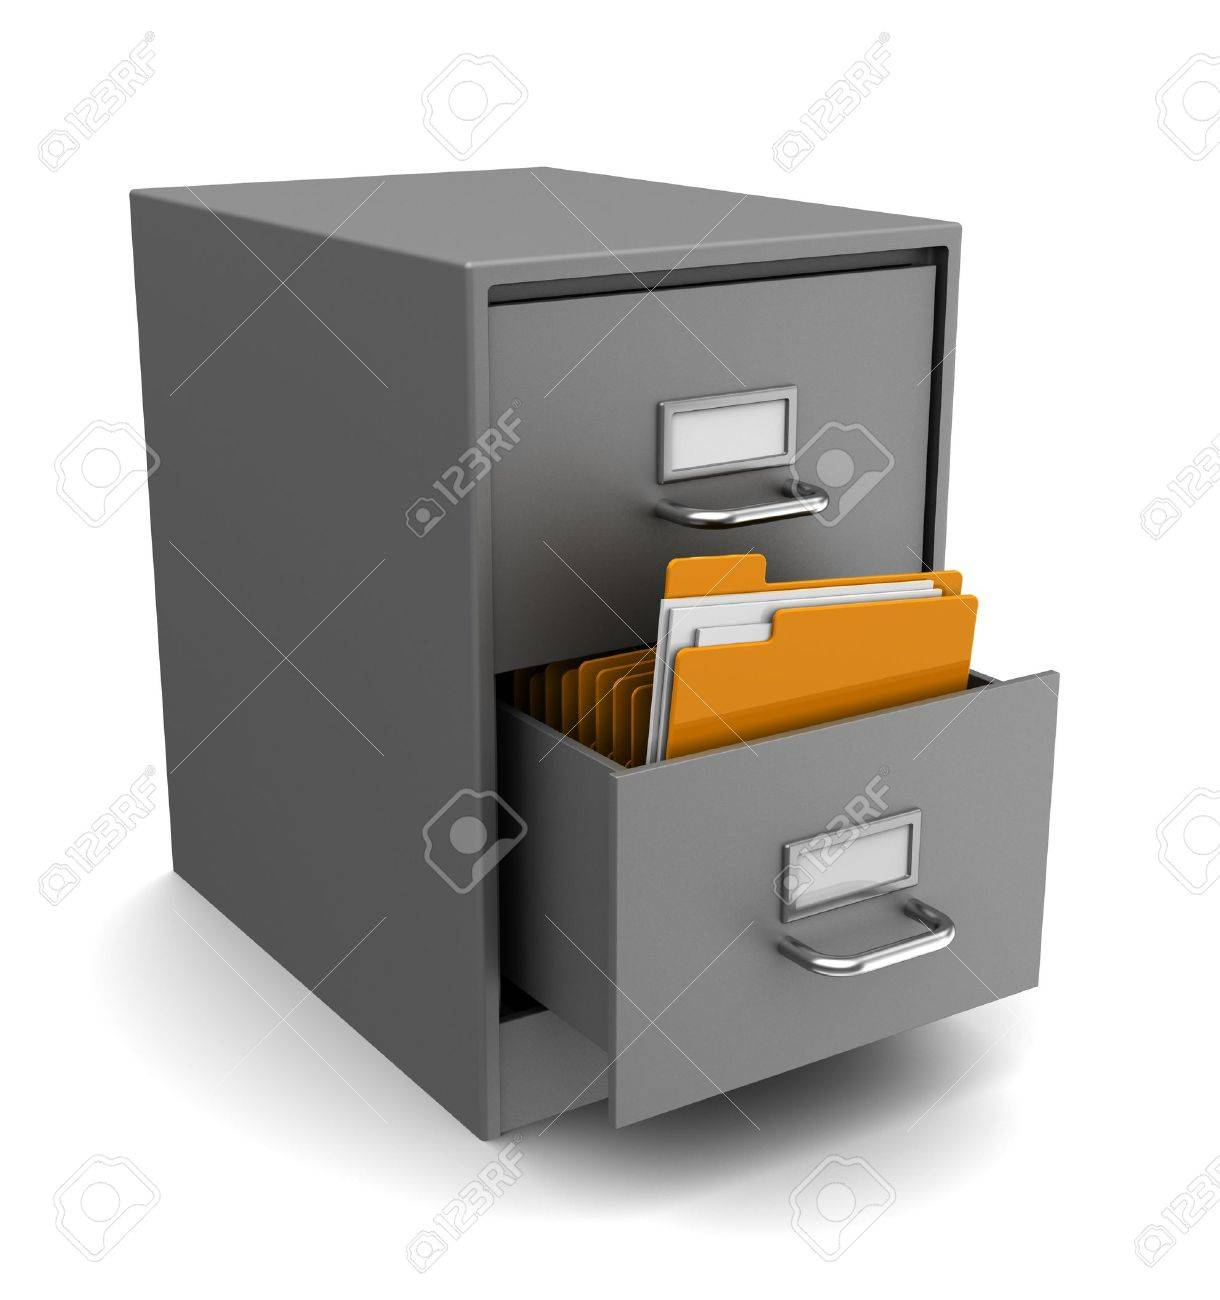 Schrank Ordner Stock Photo